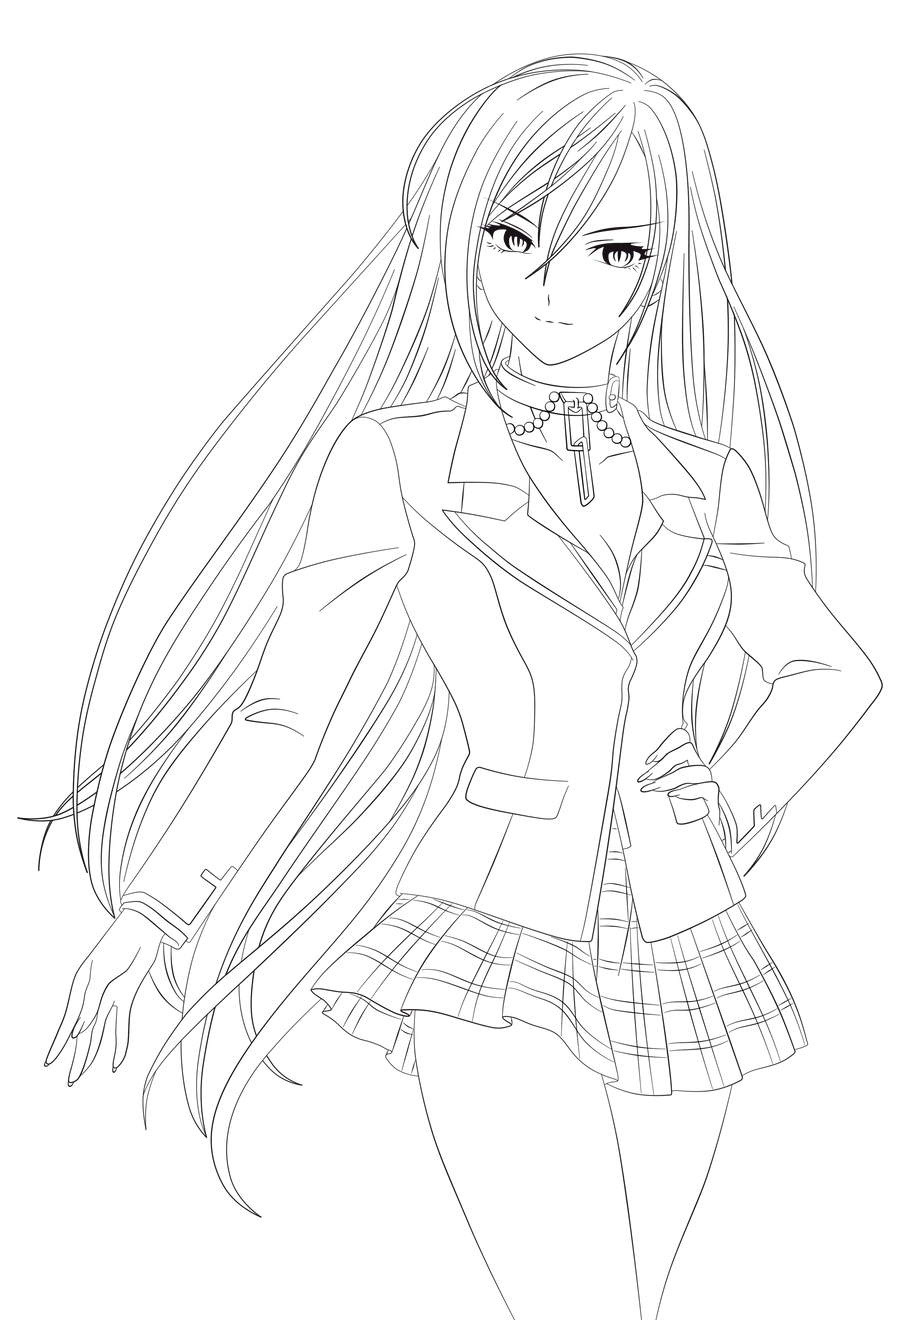 vampire anime coloring pages - photo#12